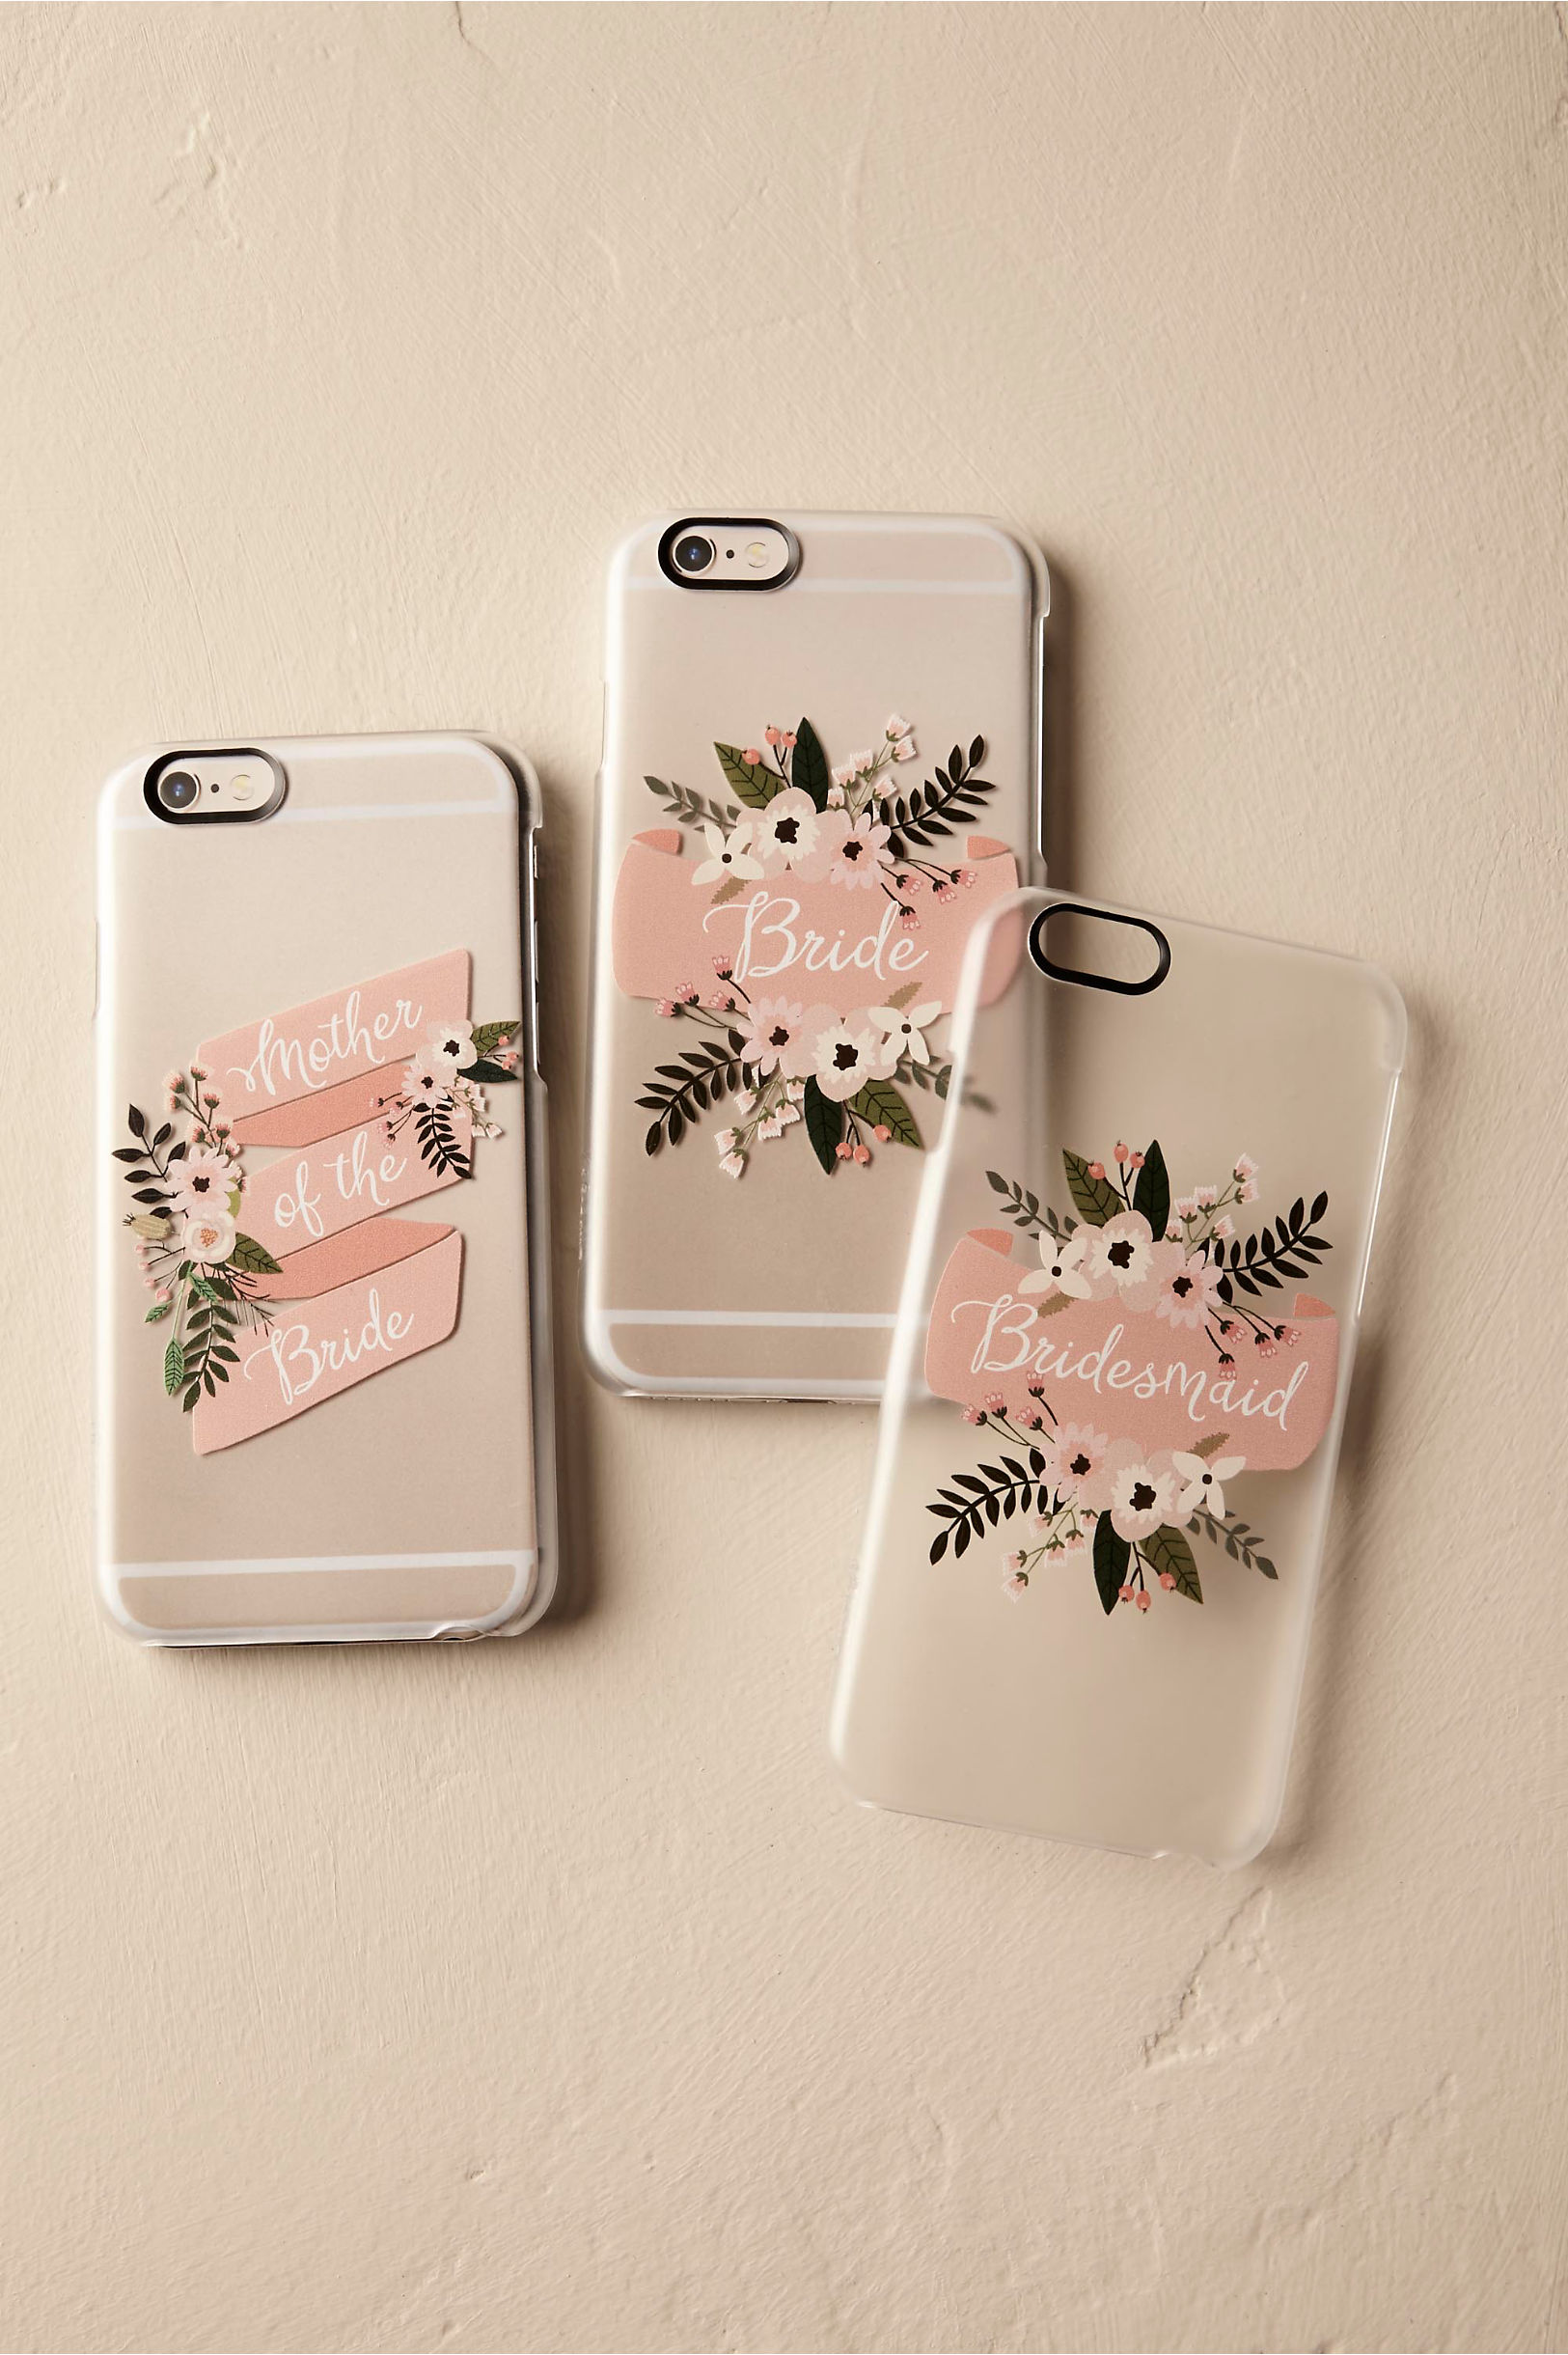 These gorgeous cases are available for a whole range of devices and you can even have your own custom cases made